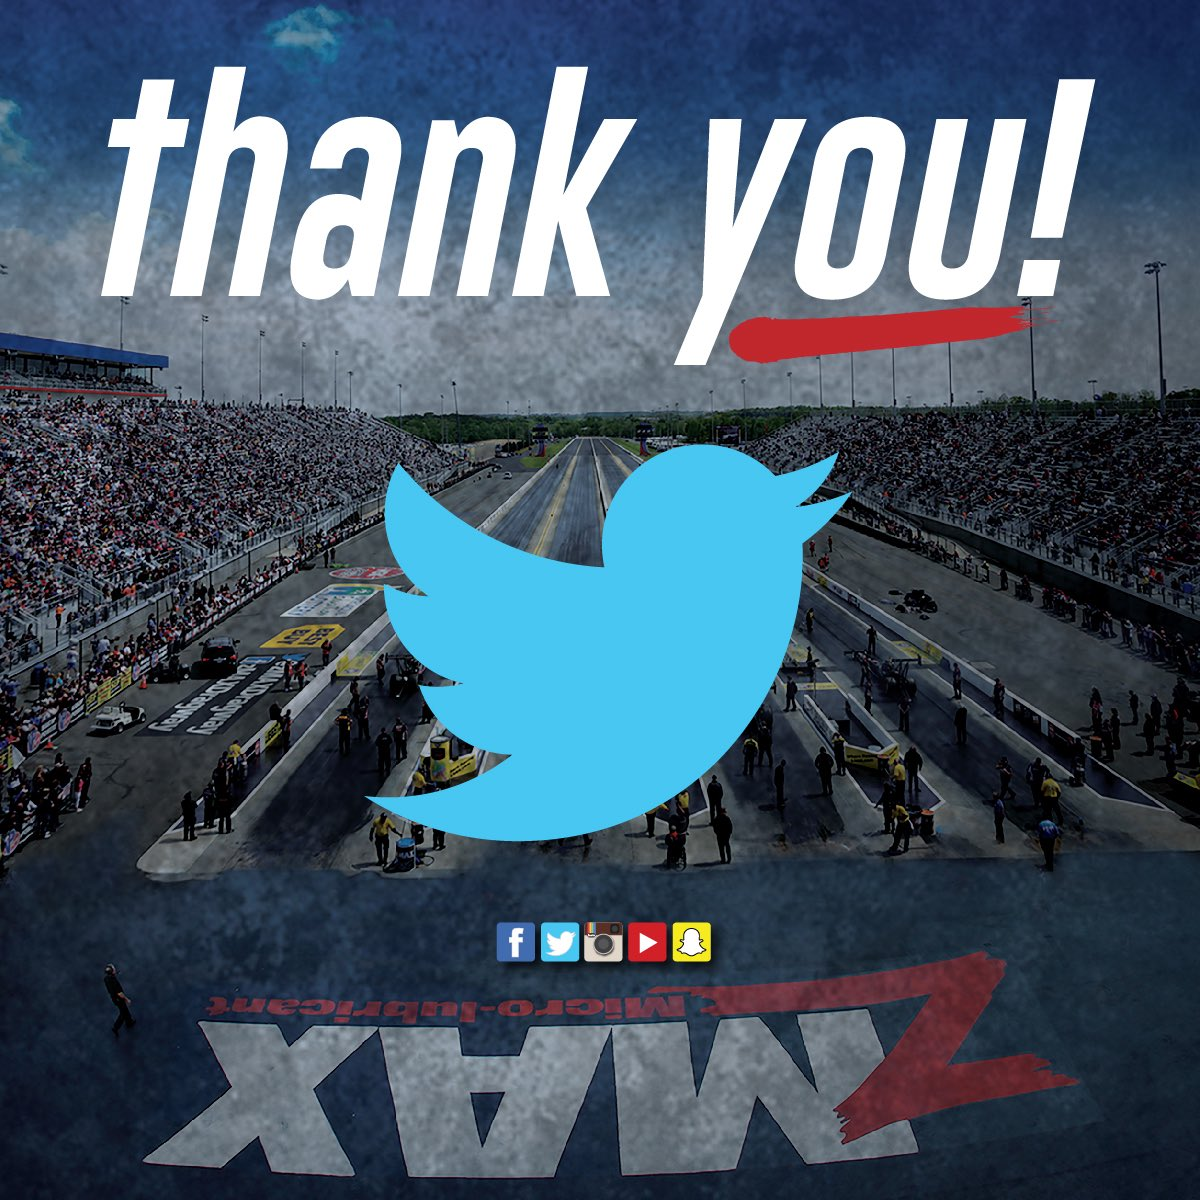 We reached a BIG milestone of 10K followers!  To say thanks we have free stuff!  RT this & you could win ZMAX swag!! https://t.co/s65W95DTOr